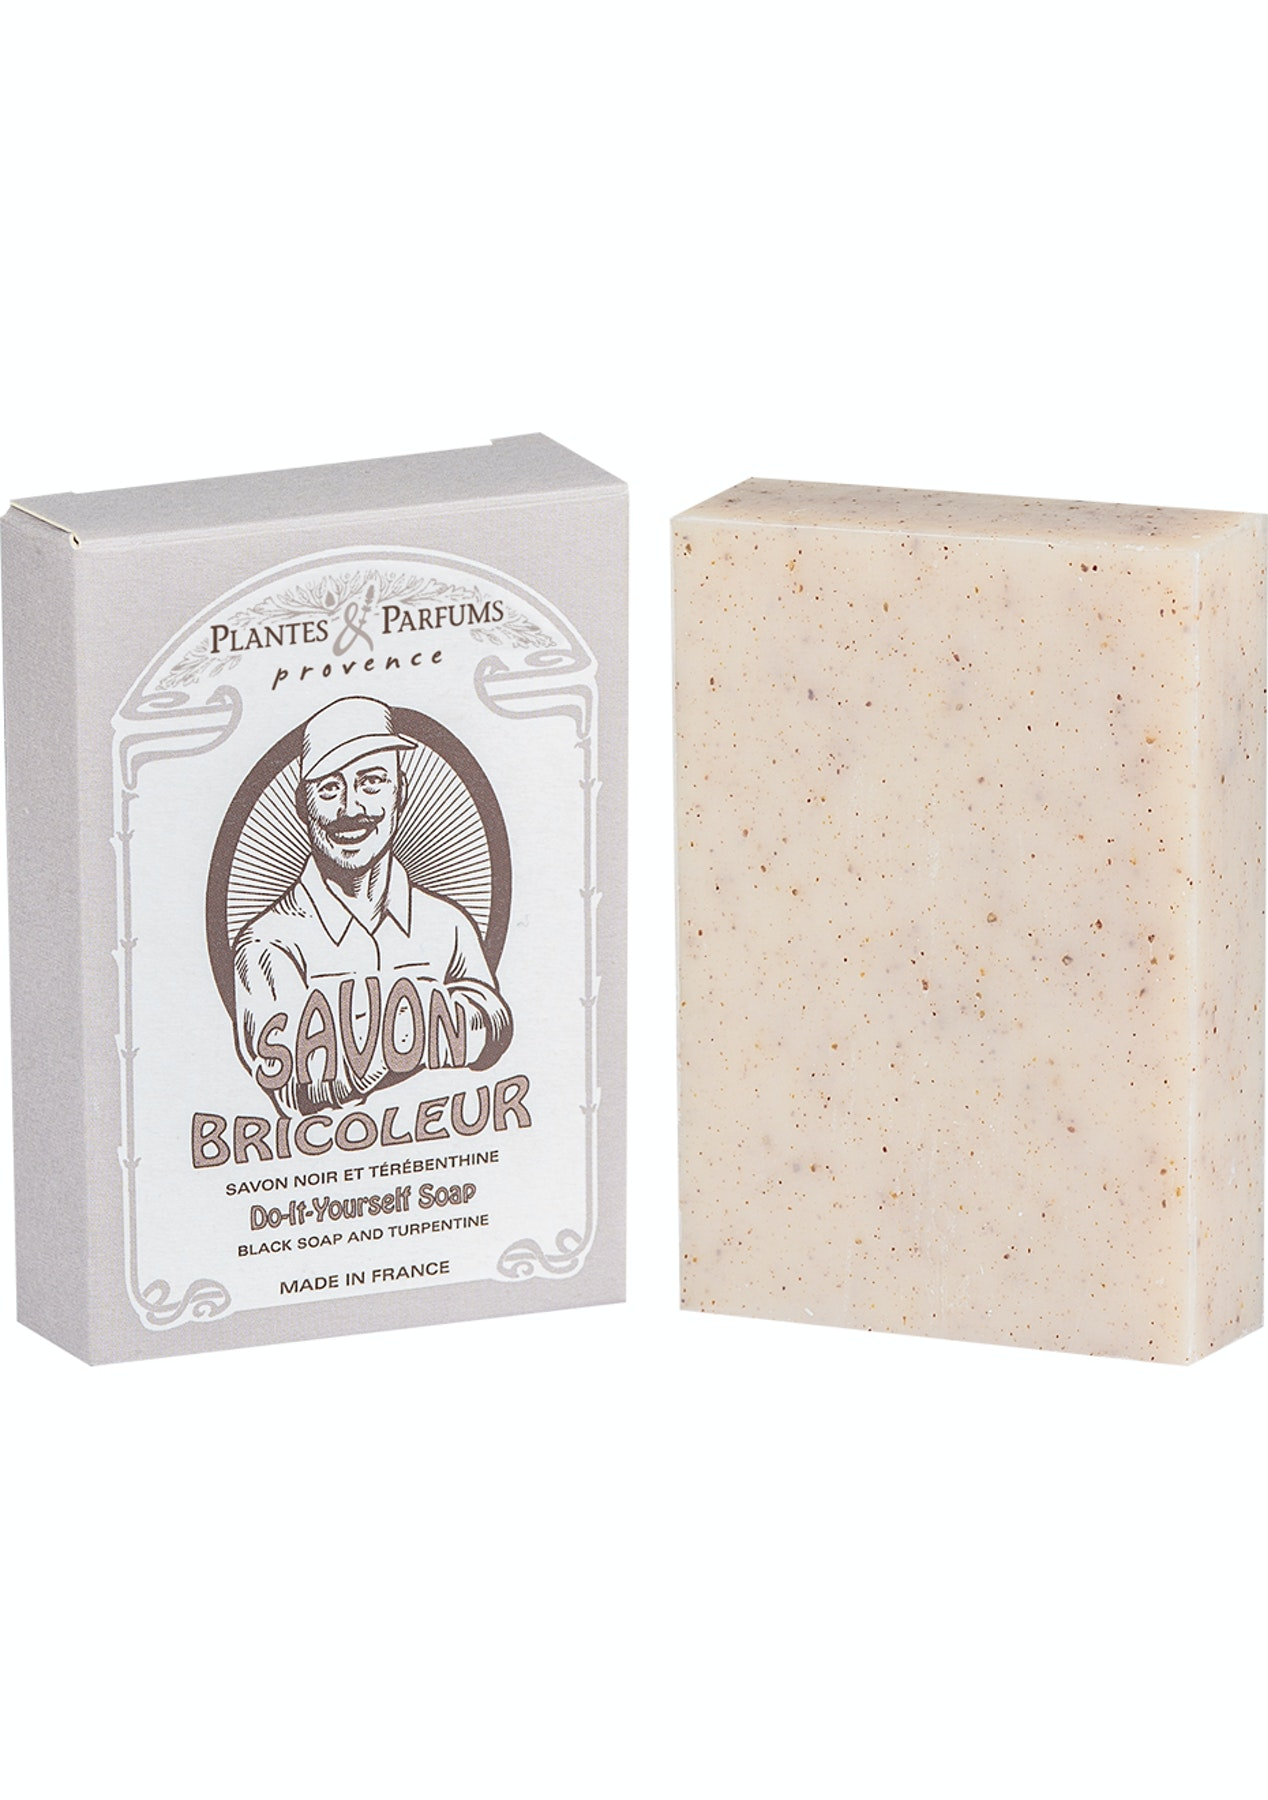 Plantes & Parfums - Savons Bricoleur 100g Do-It-Yourself Soap- Black Soap  and Turpentine